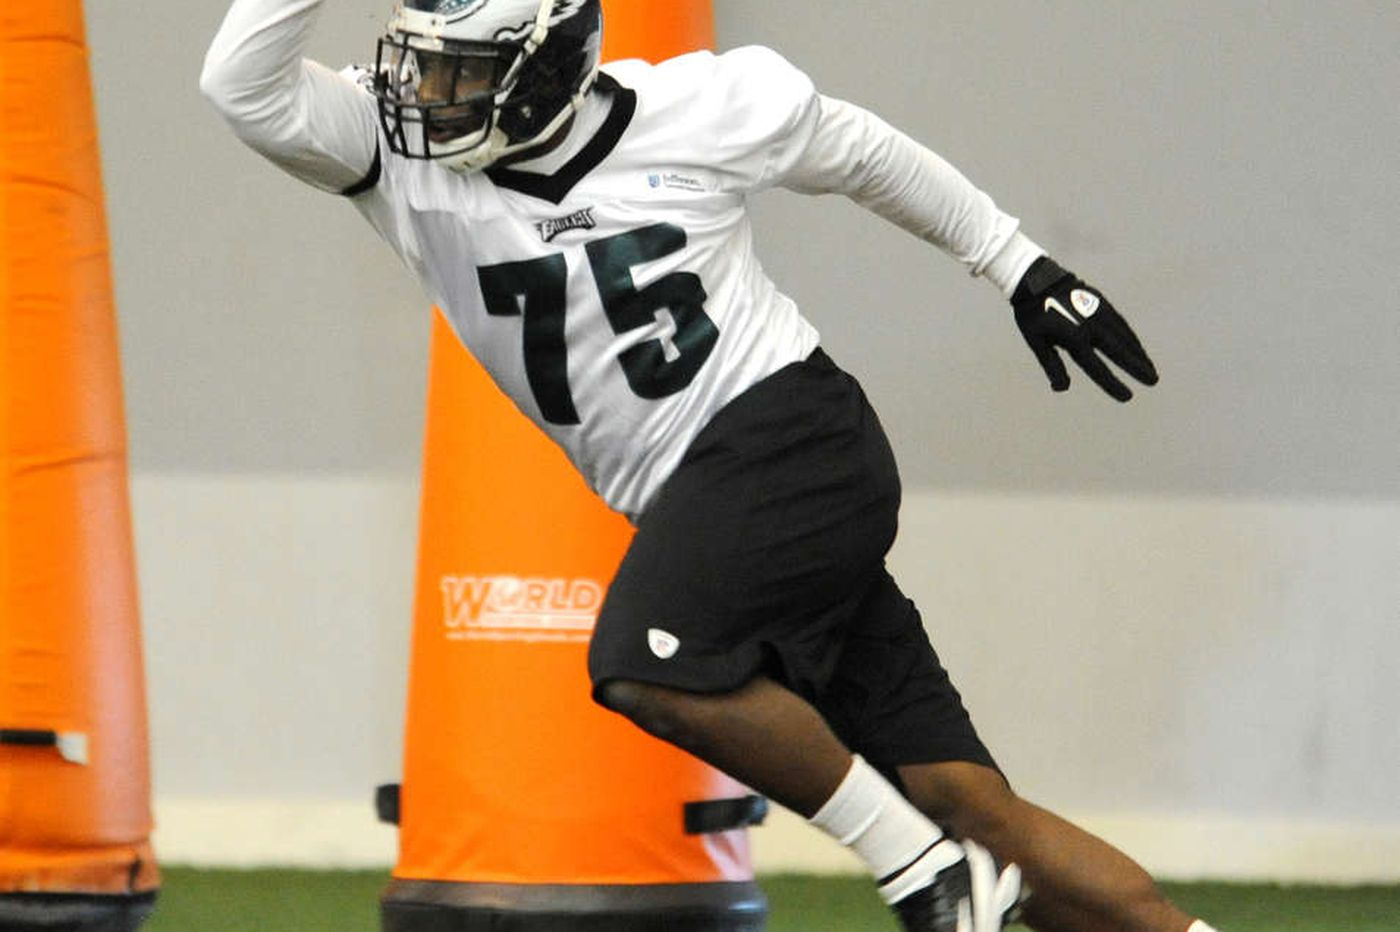 Eagles defense taking shape as rookie minicamp ends